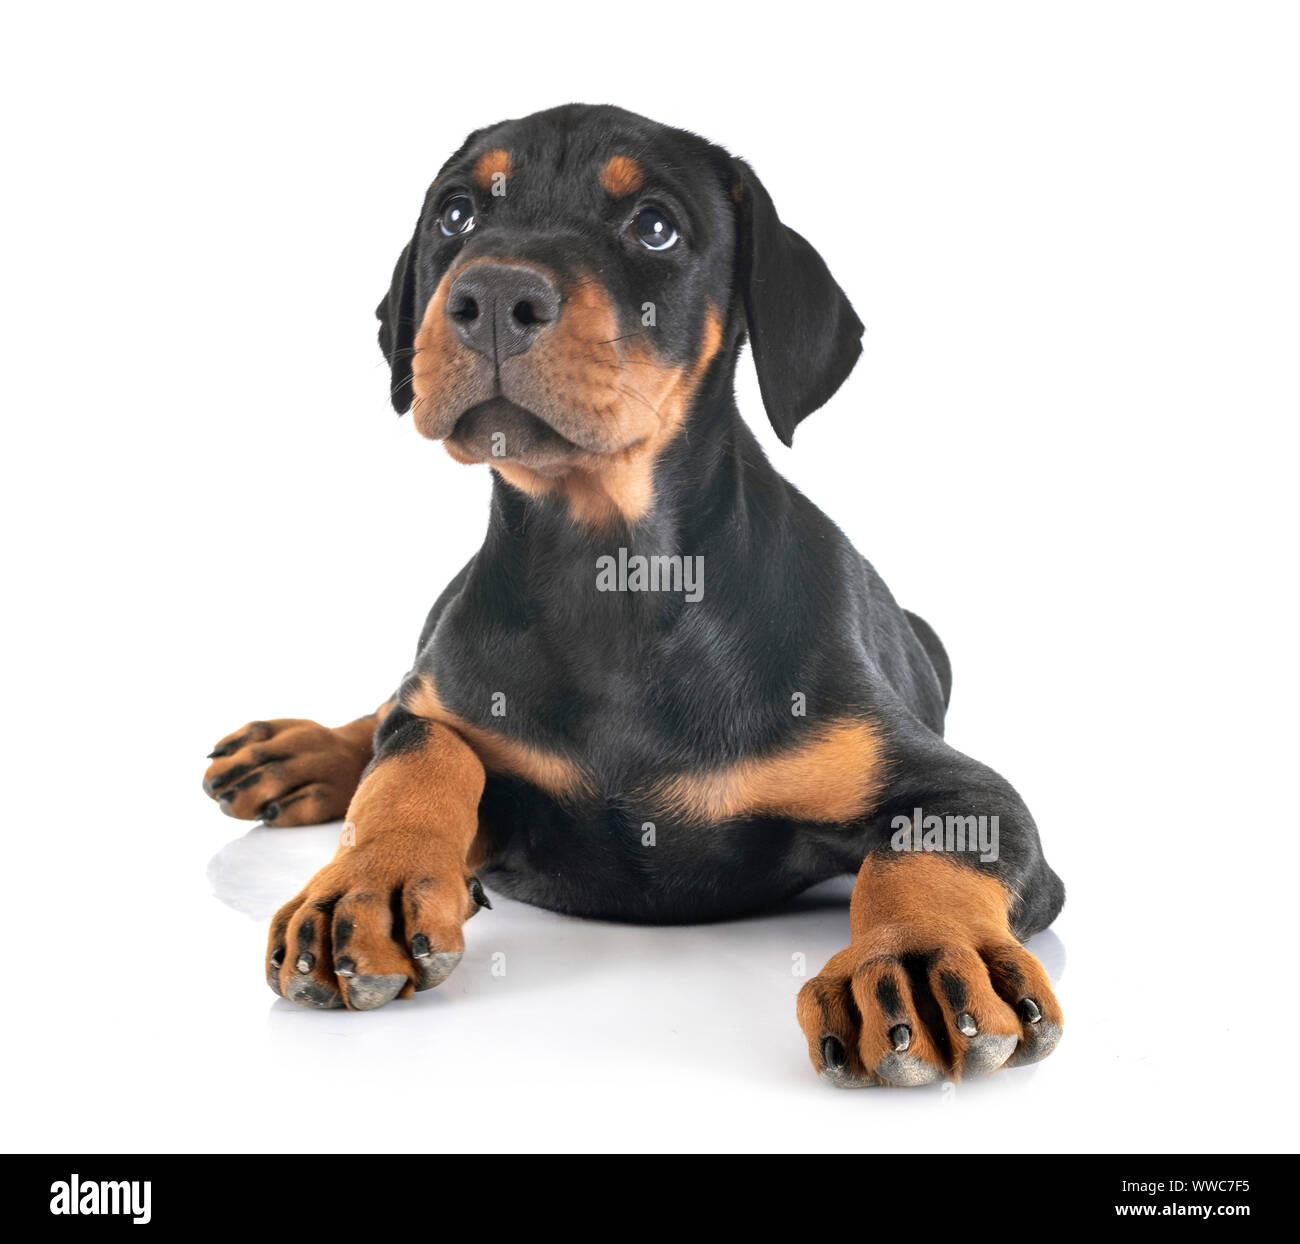 Puppy Doberman Pinscher In Front Of White Background Stock Photo Alamy